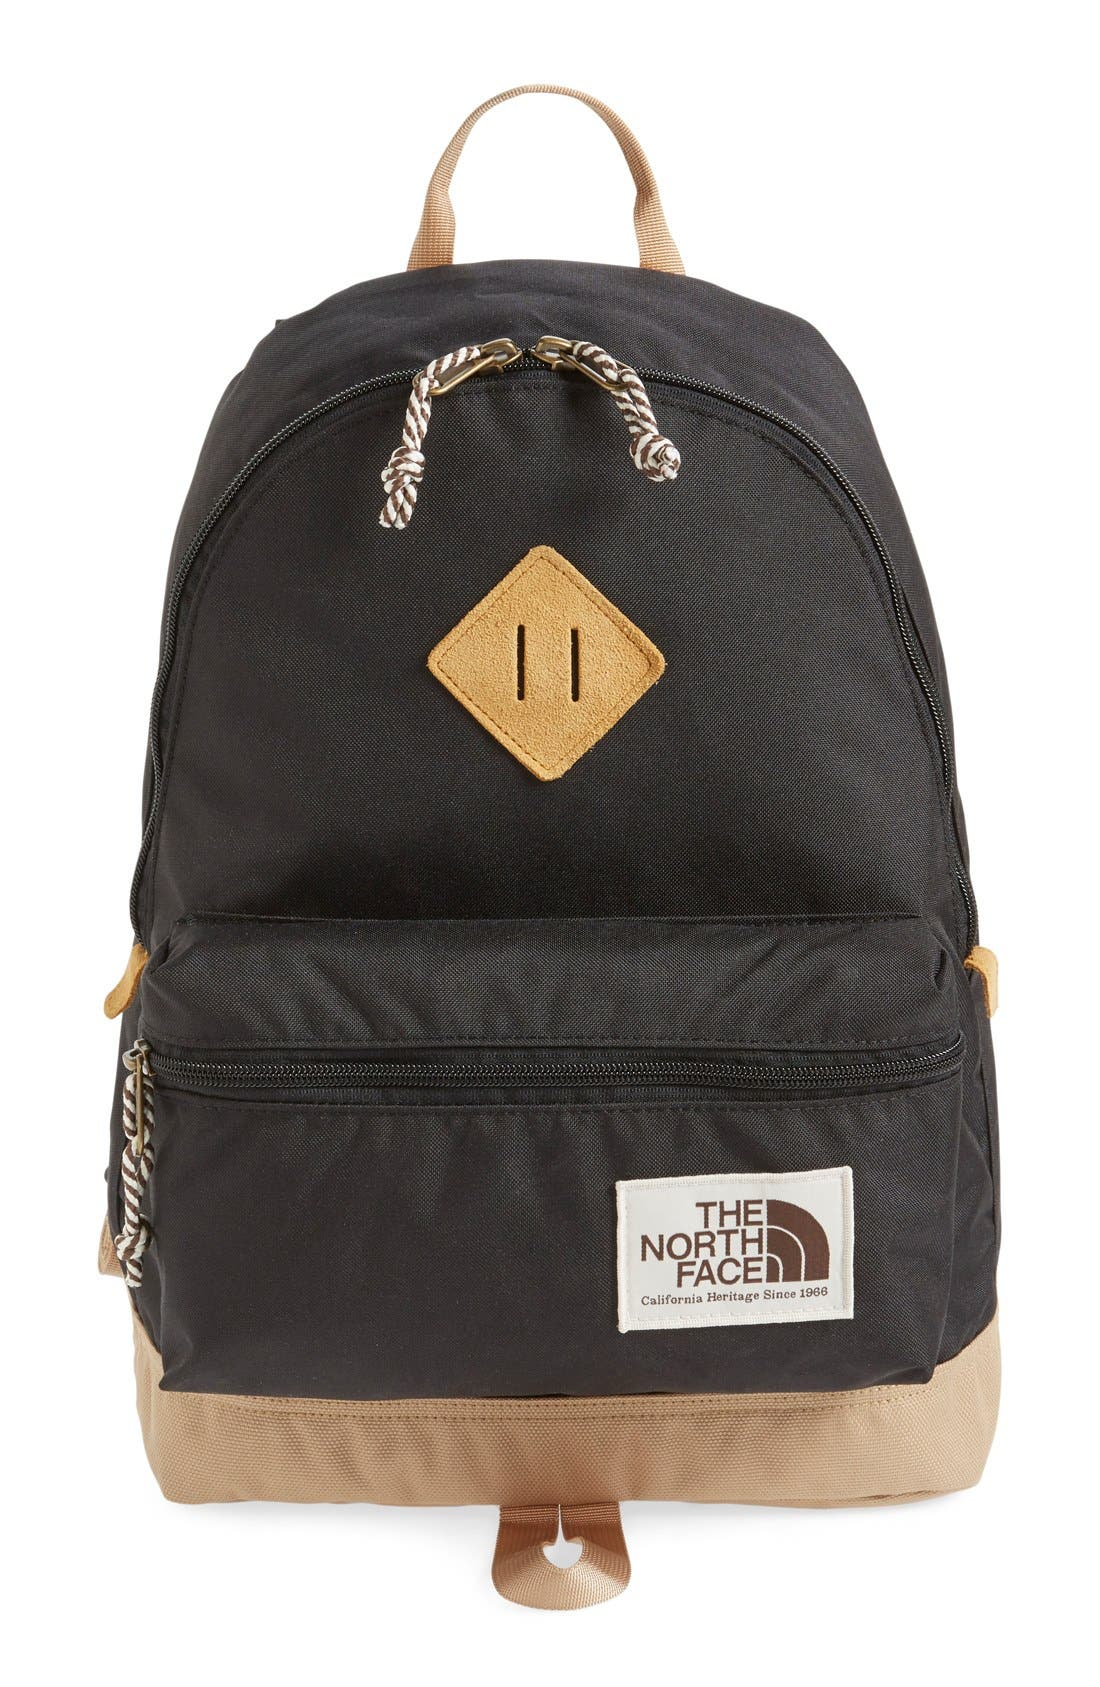 THE NORTH FACE 'Mini Berkeley' Backpack, Main, color, 001